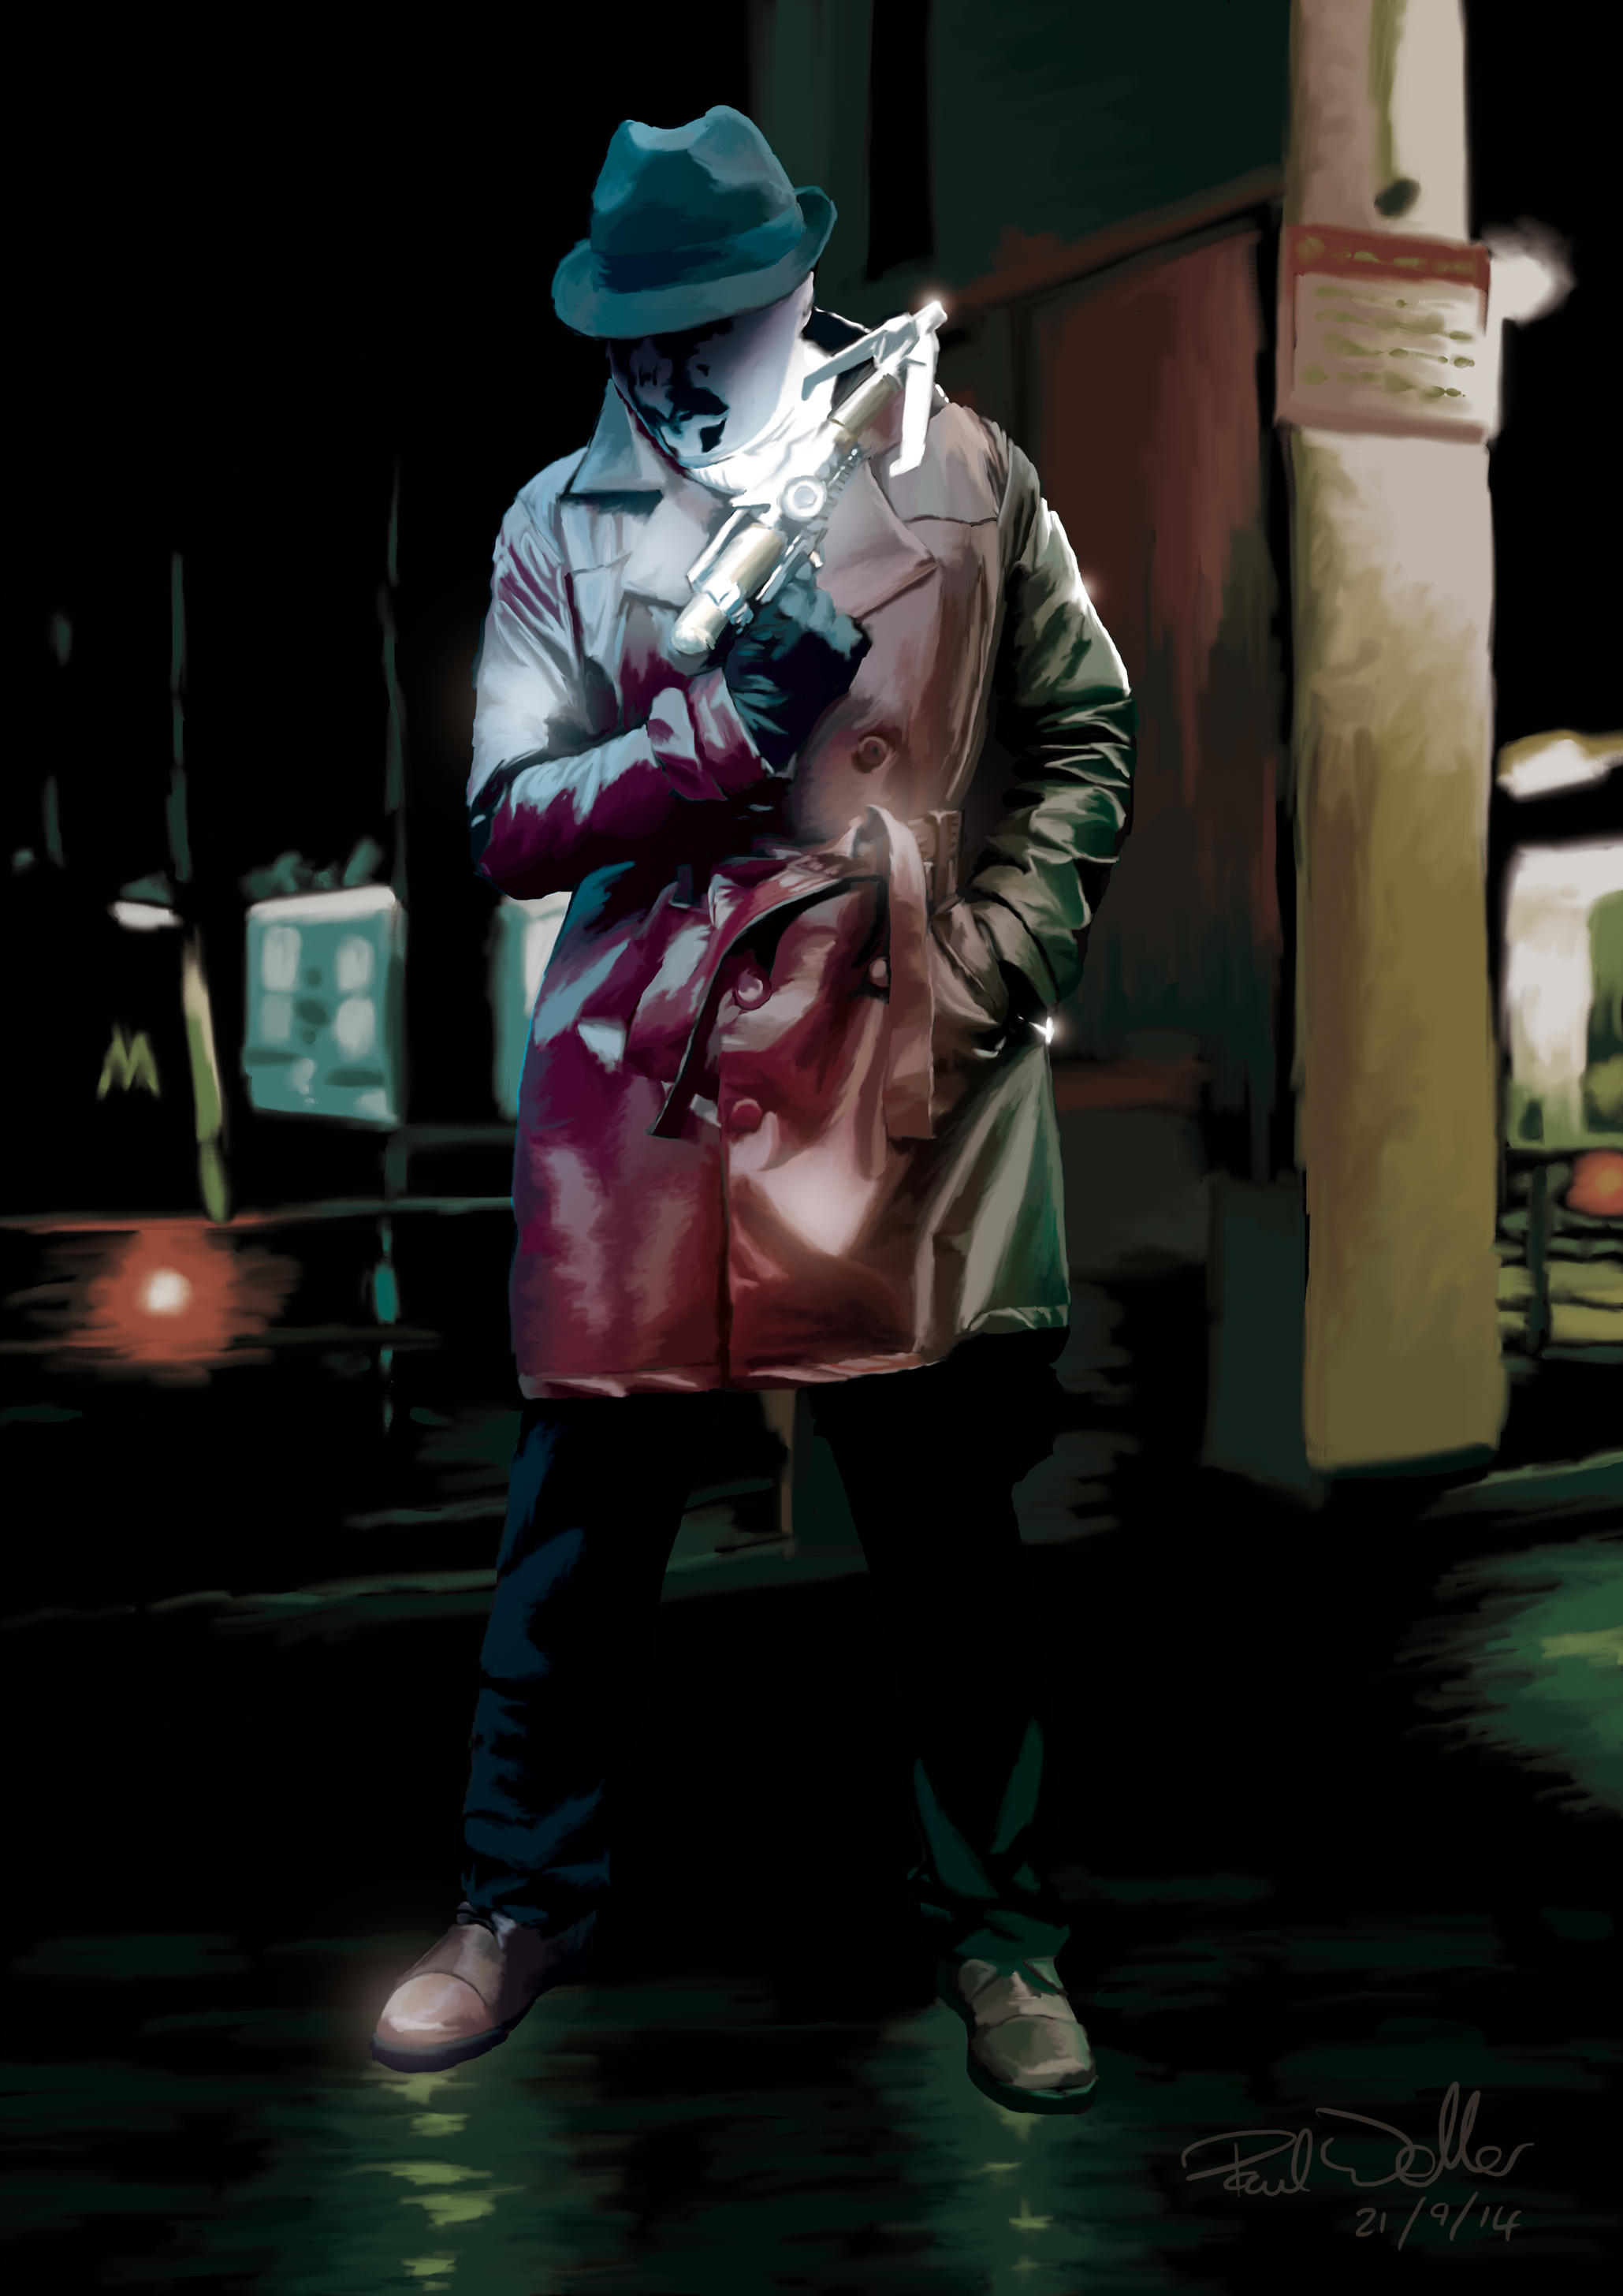 Rorschach (Watchmen) by sunteam